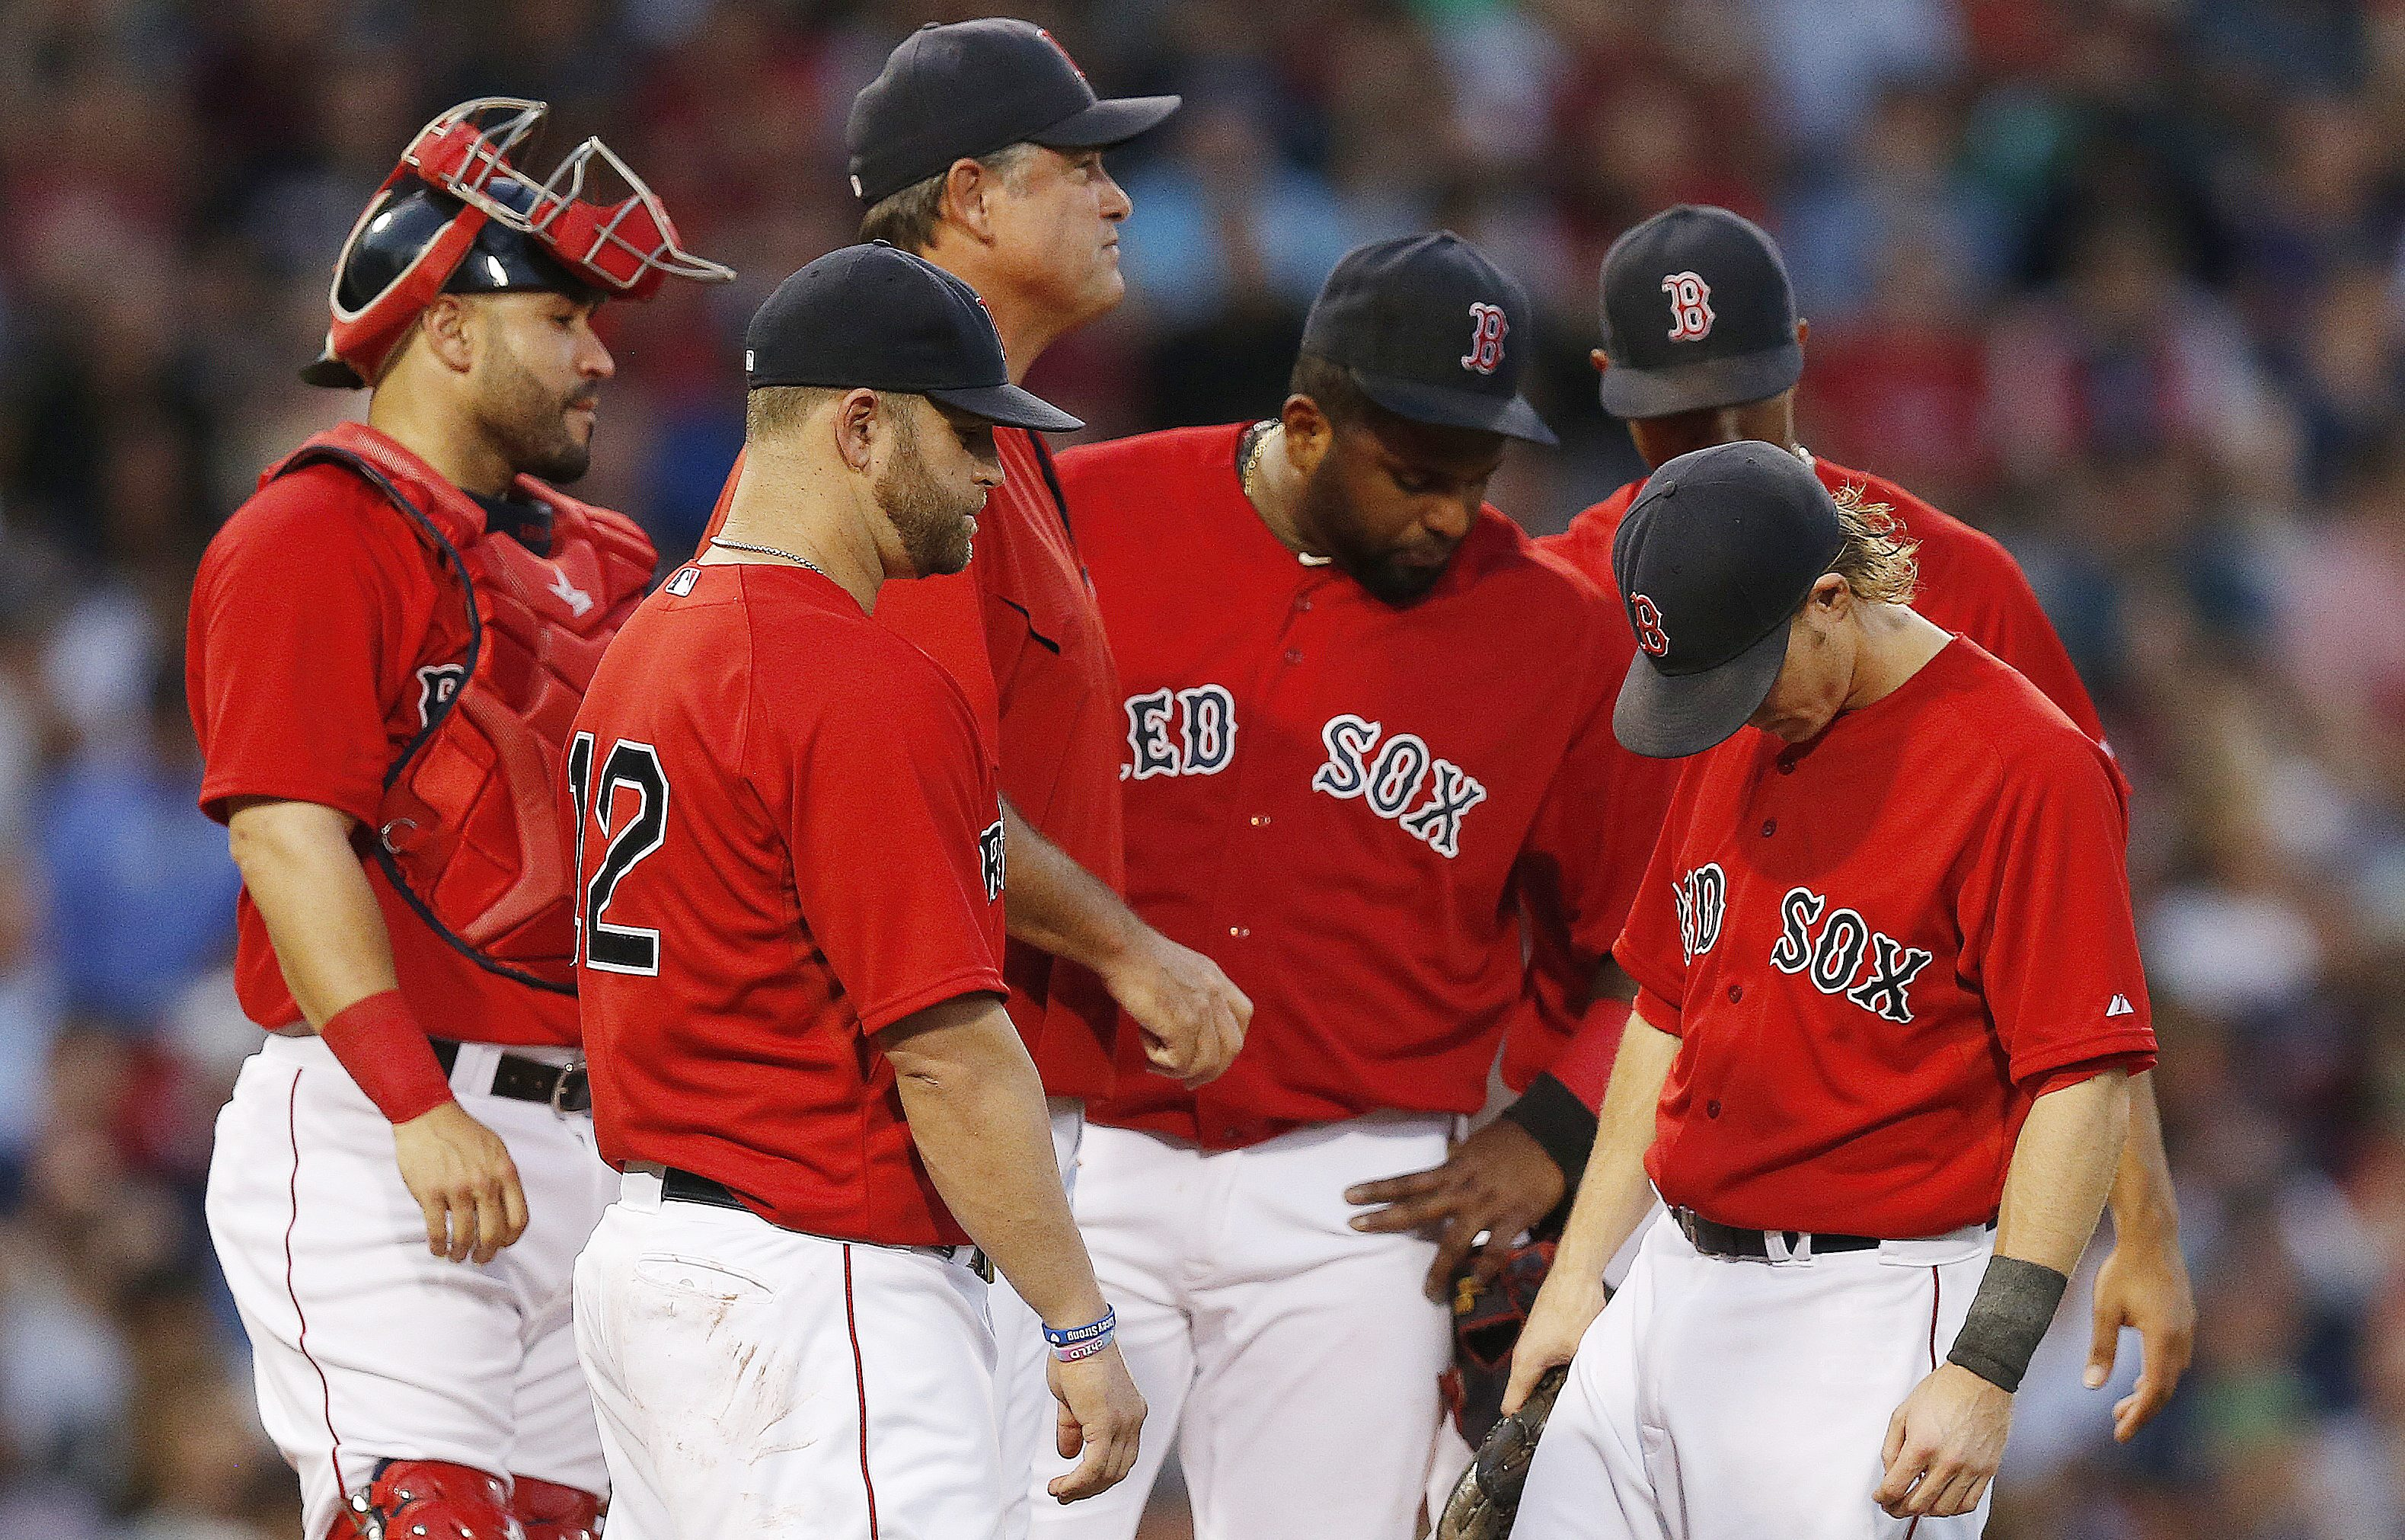 Boston Red Sox manager, John Farrell, third from left, looks to the bullpen as players, from left, Sandy Leon, Mike Napoli, Pablo Sandoval, Xander Bogaerts, partially hidden, and Brock Holt wait for a relief pitcher after Clay Buchholz left the baseball g